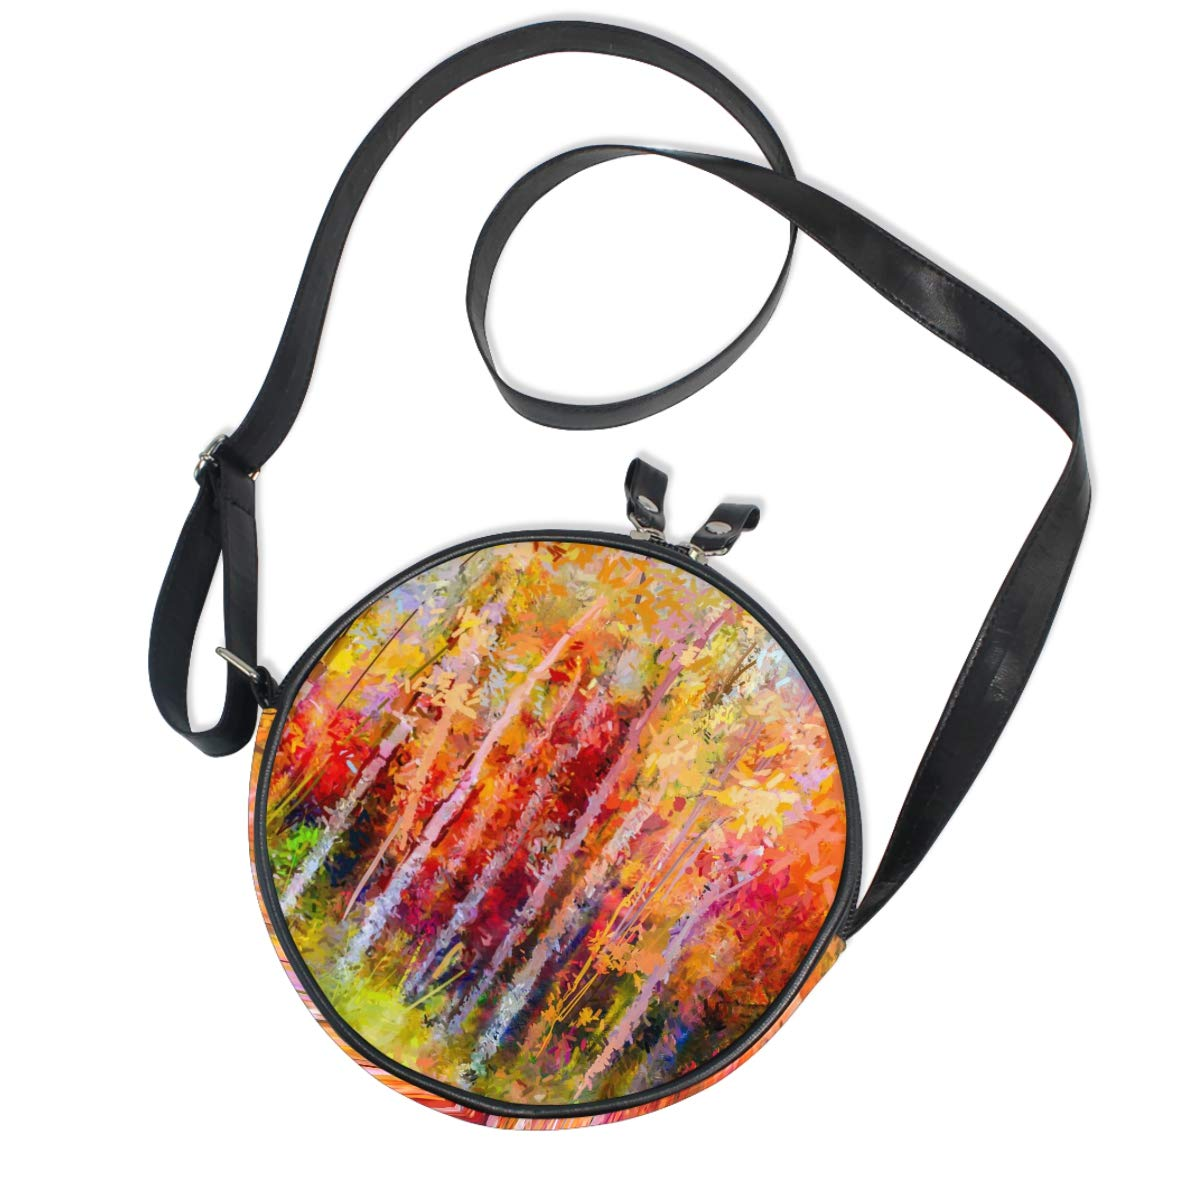 Autumn Forest Small Round Canvas Crossbody Messenger Bags for Women